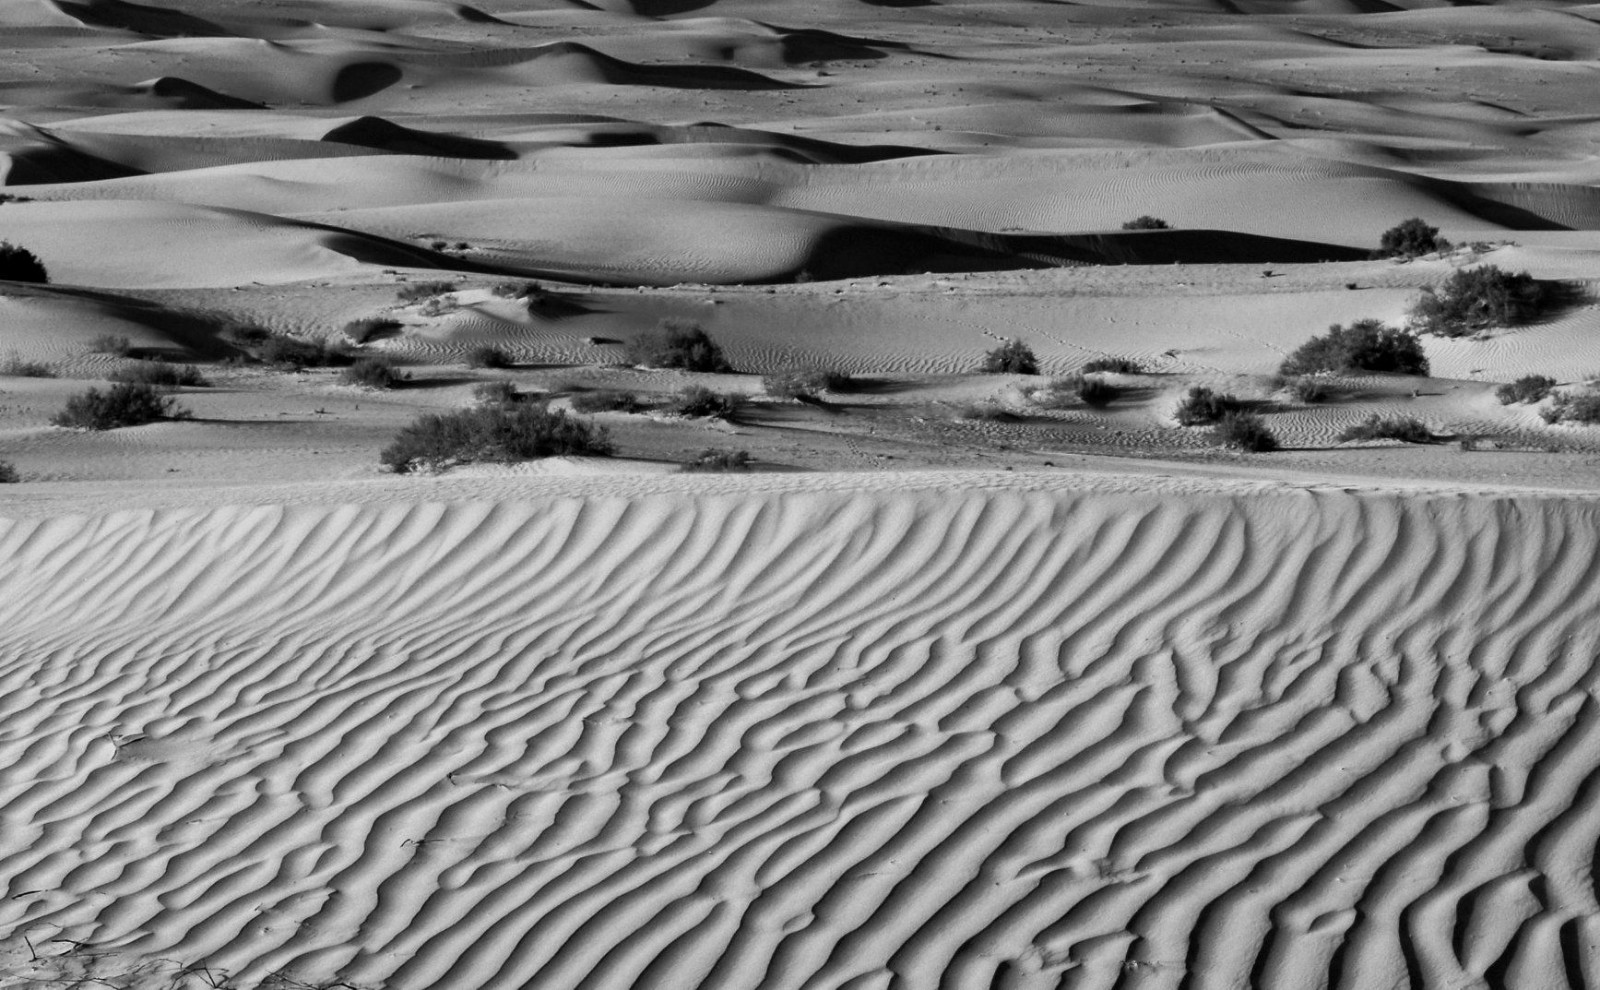 MONO - Lines in the Sand by Ronnie Simpson (7 marks)